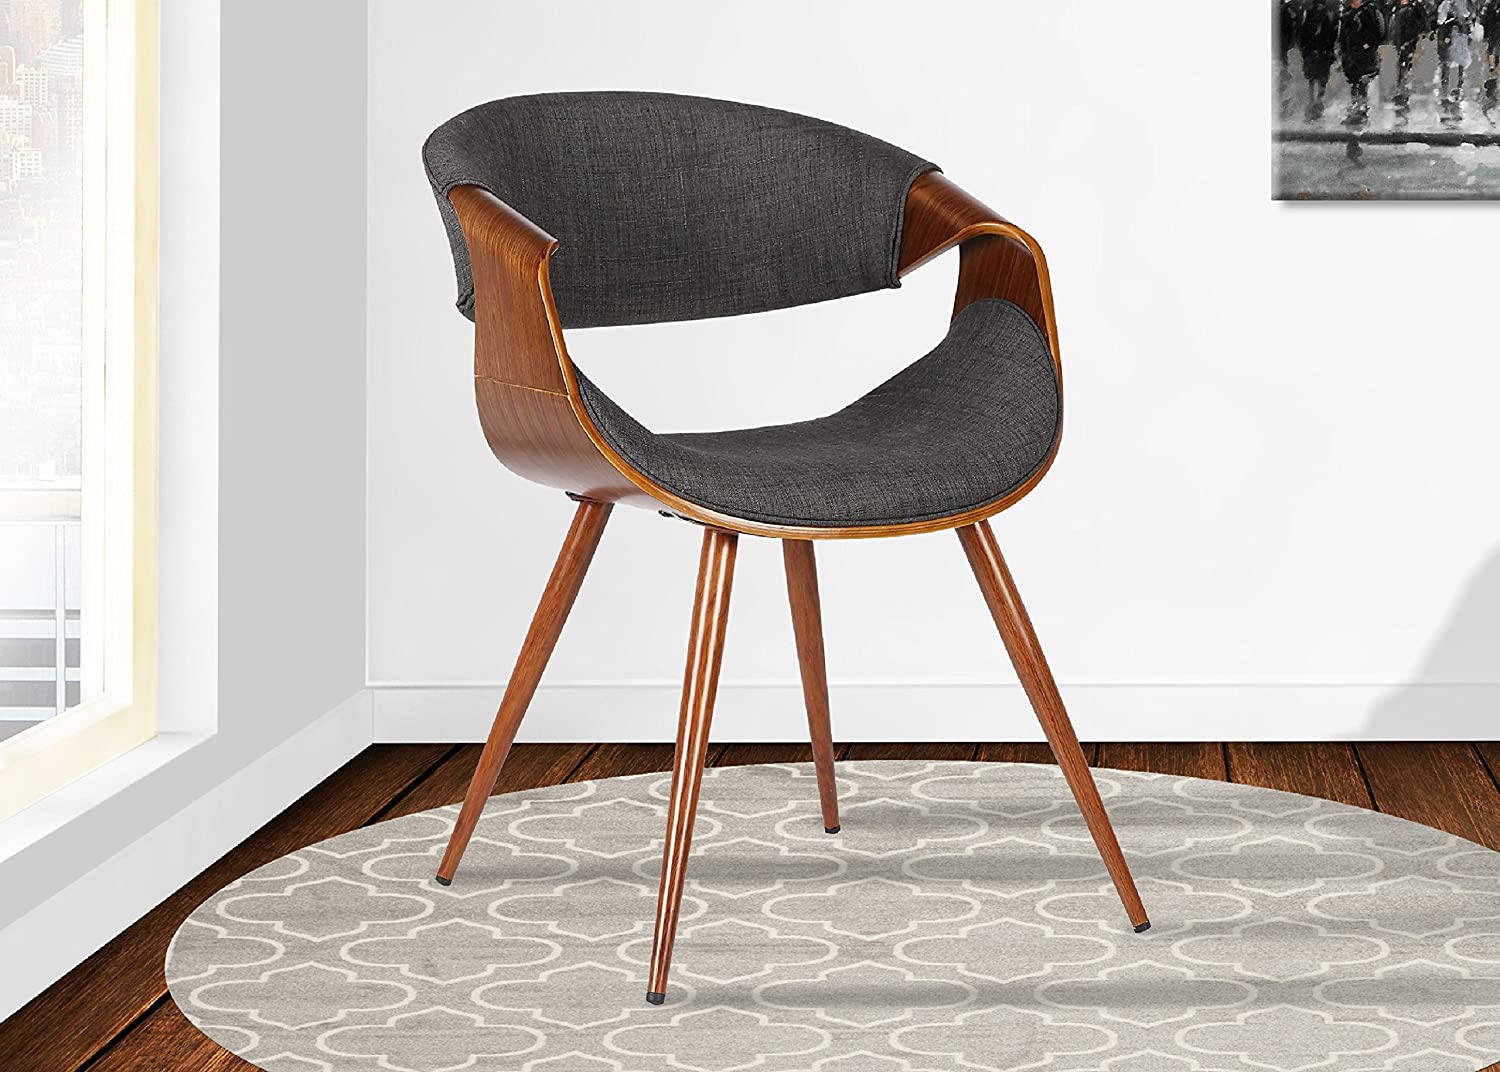 Armen Living Butterfly Dining Chair in Charcoal Fabric and Walnut Wood Finish - Chairs